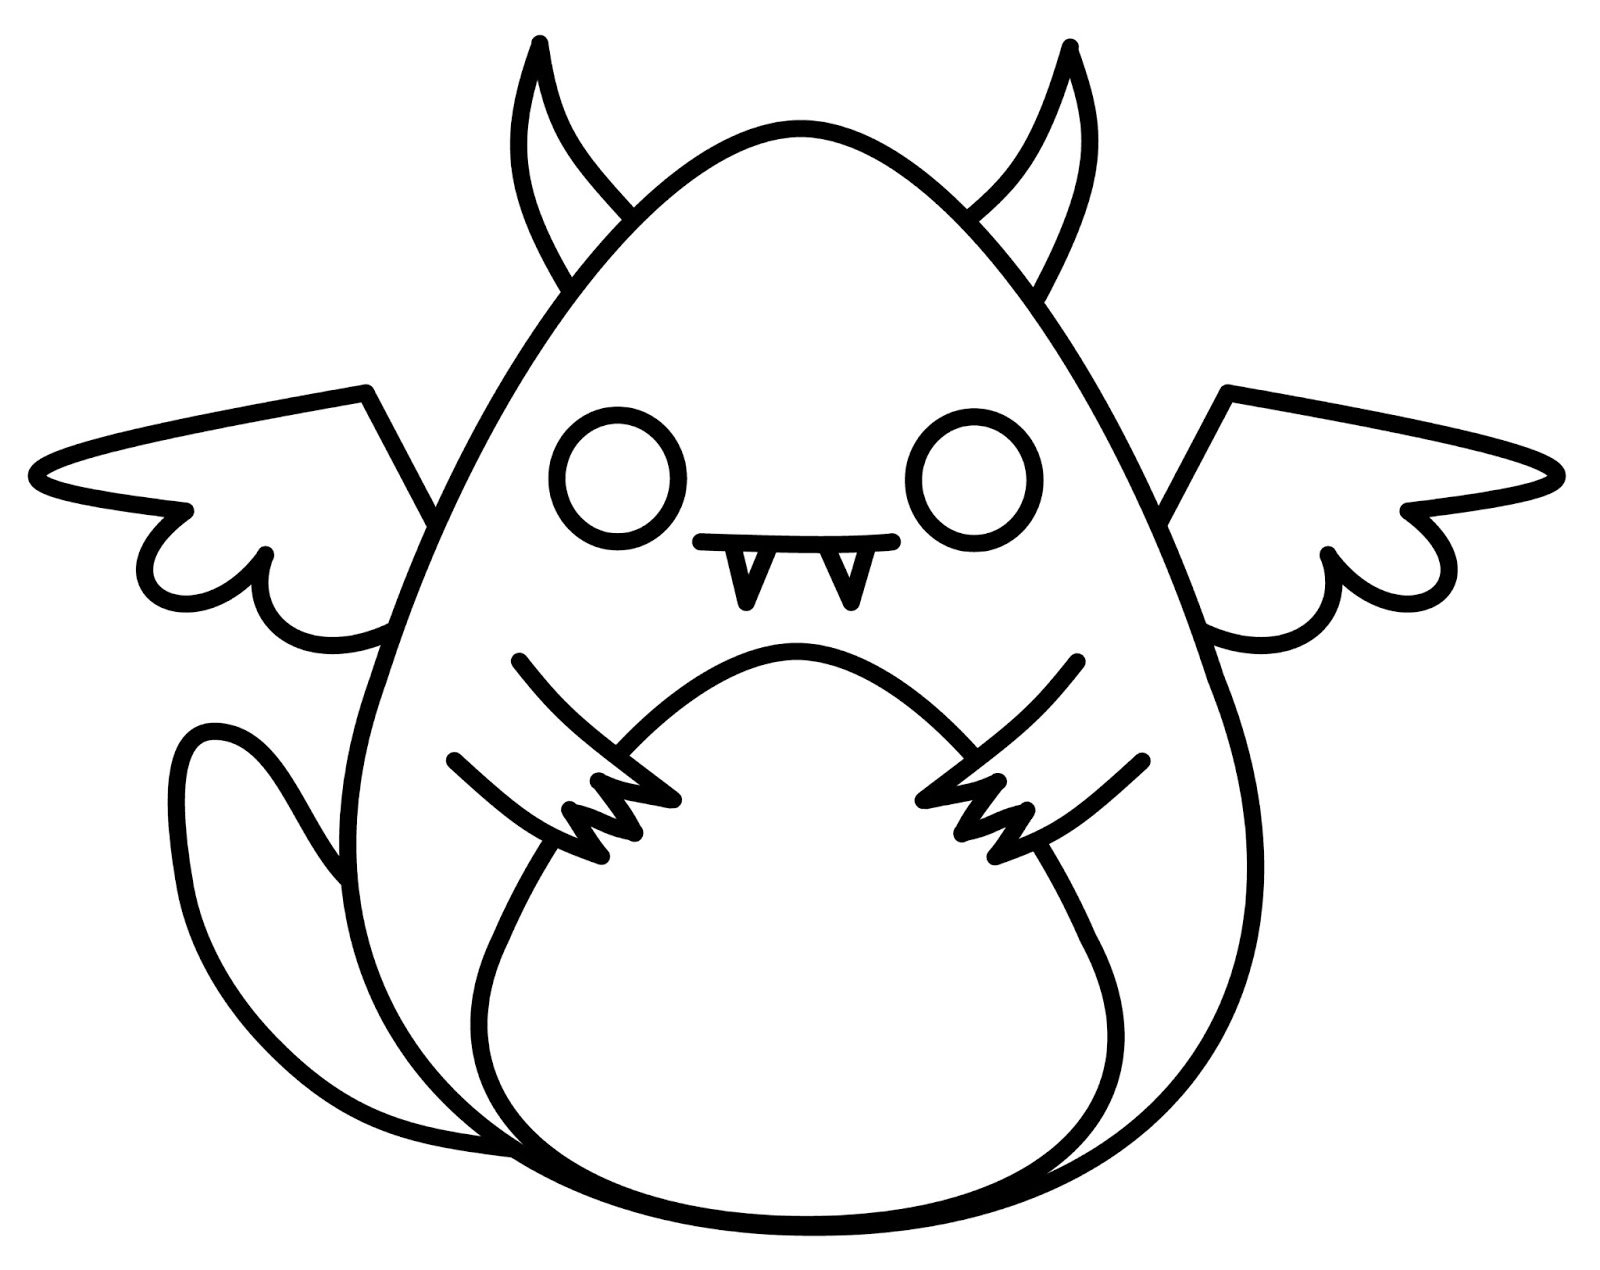 Cute n kawaii how to draw a kawaii monster for Cute simple drawings